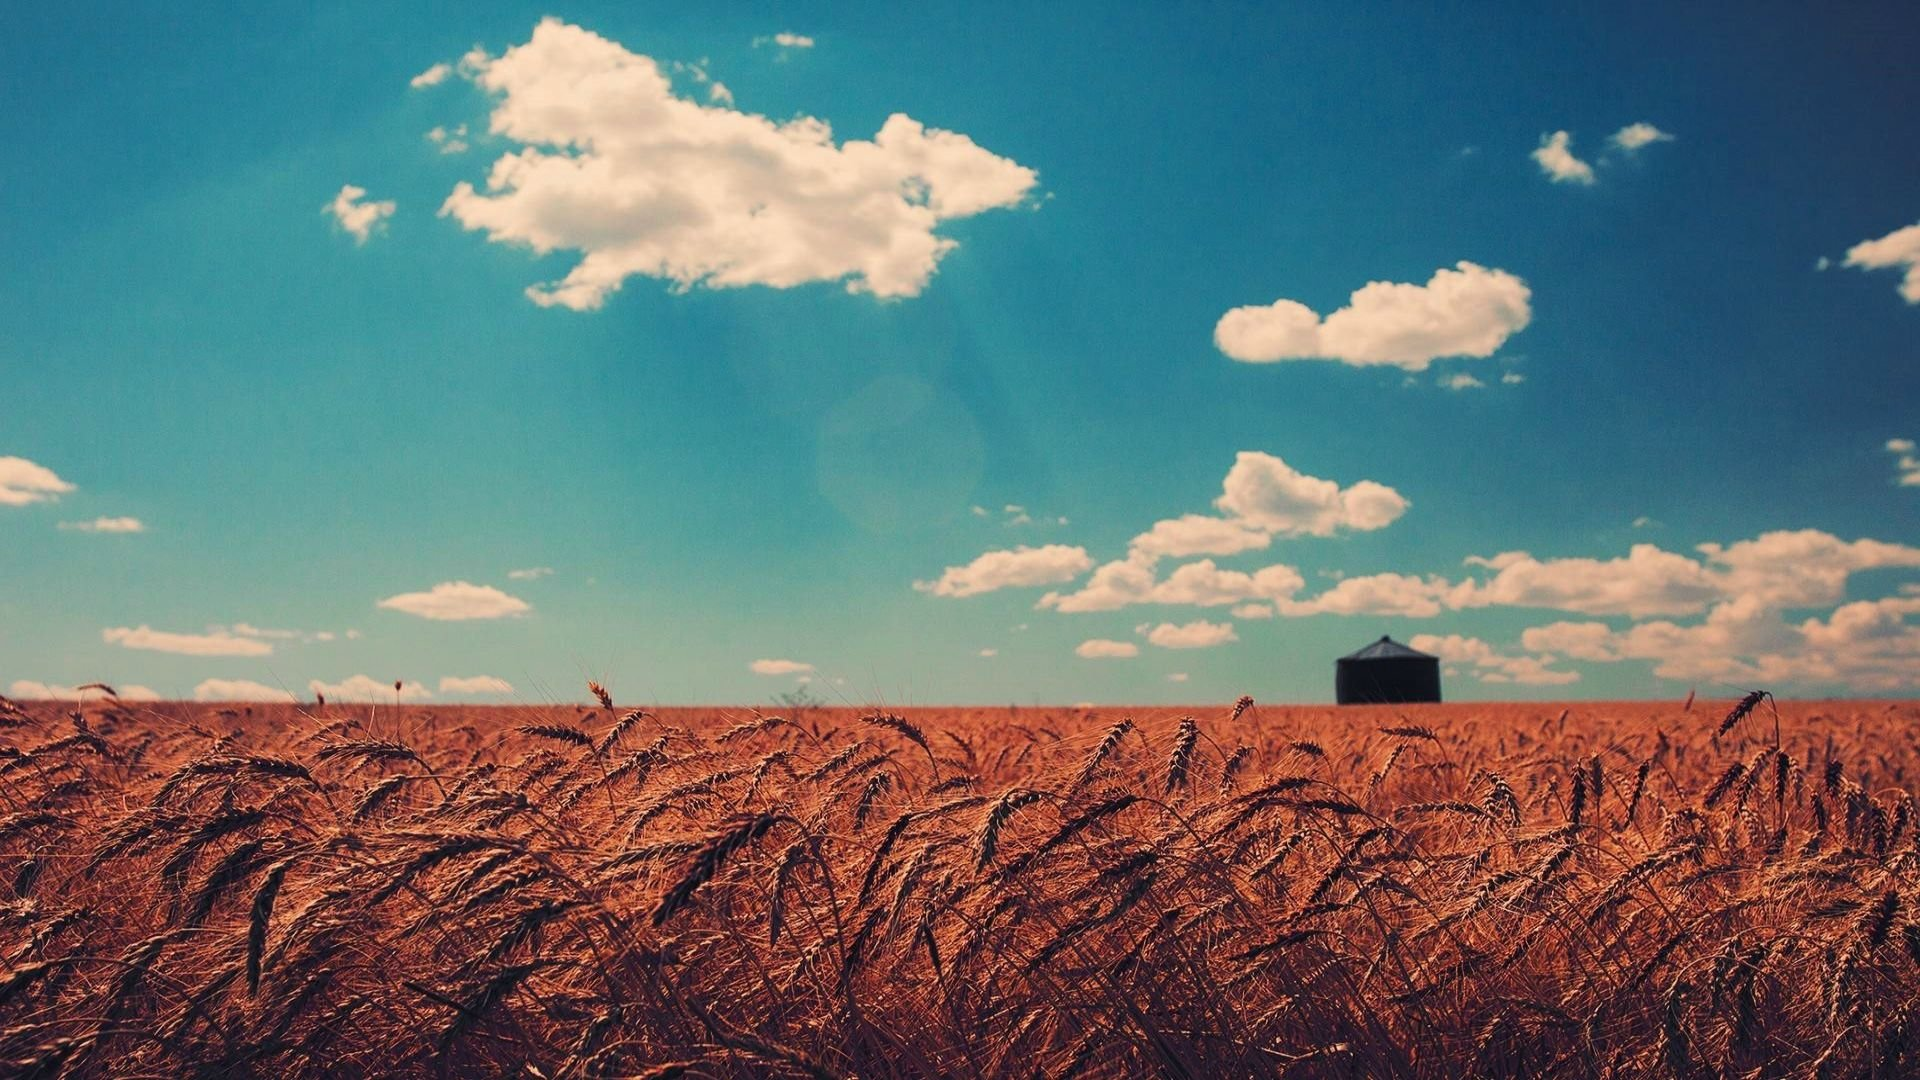 Download Beautiful Combination Of Brown Wheat Field And Blue Sky